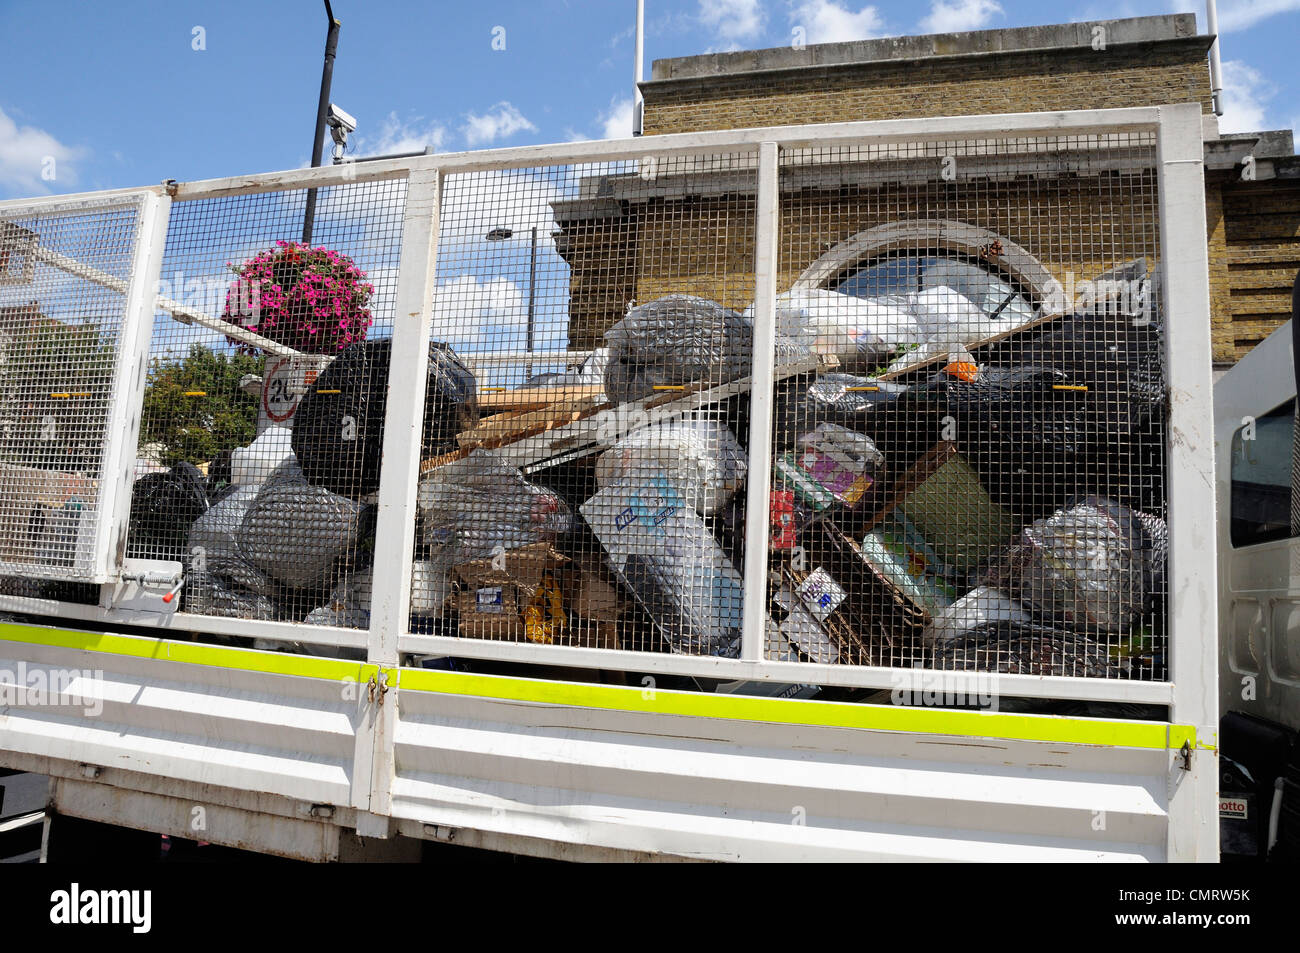 Vehicle with mesh panels on the side containing rubbish bags - Stock Image